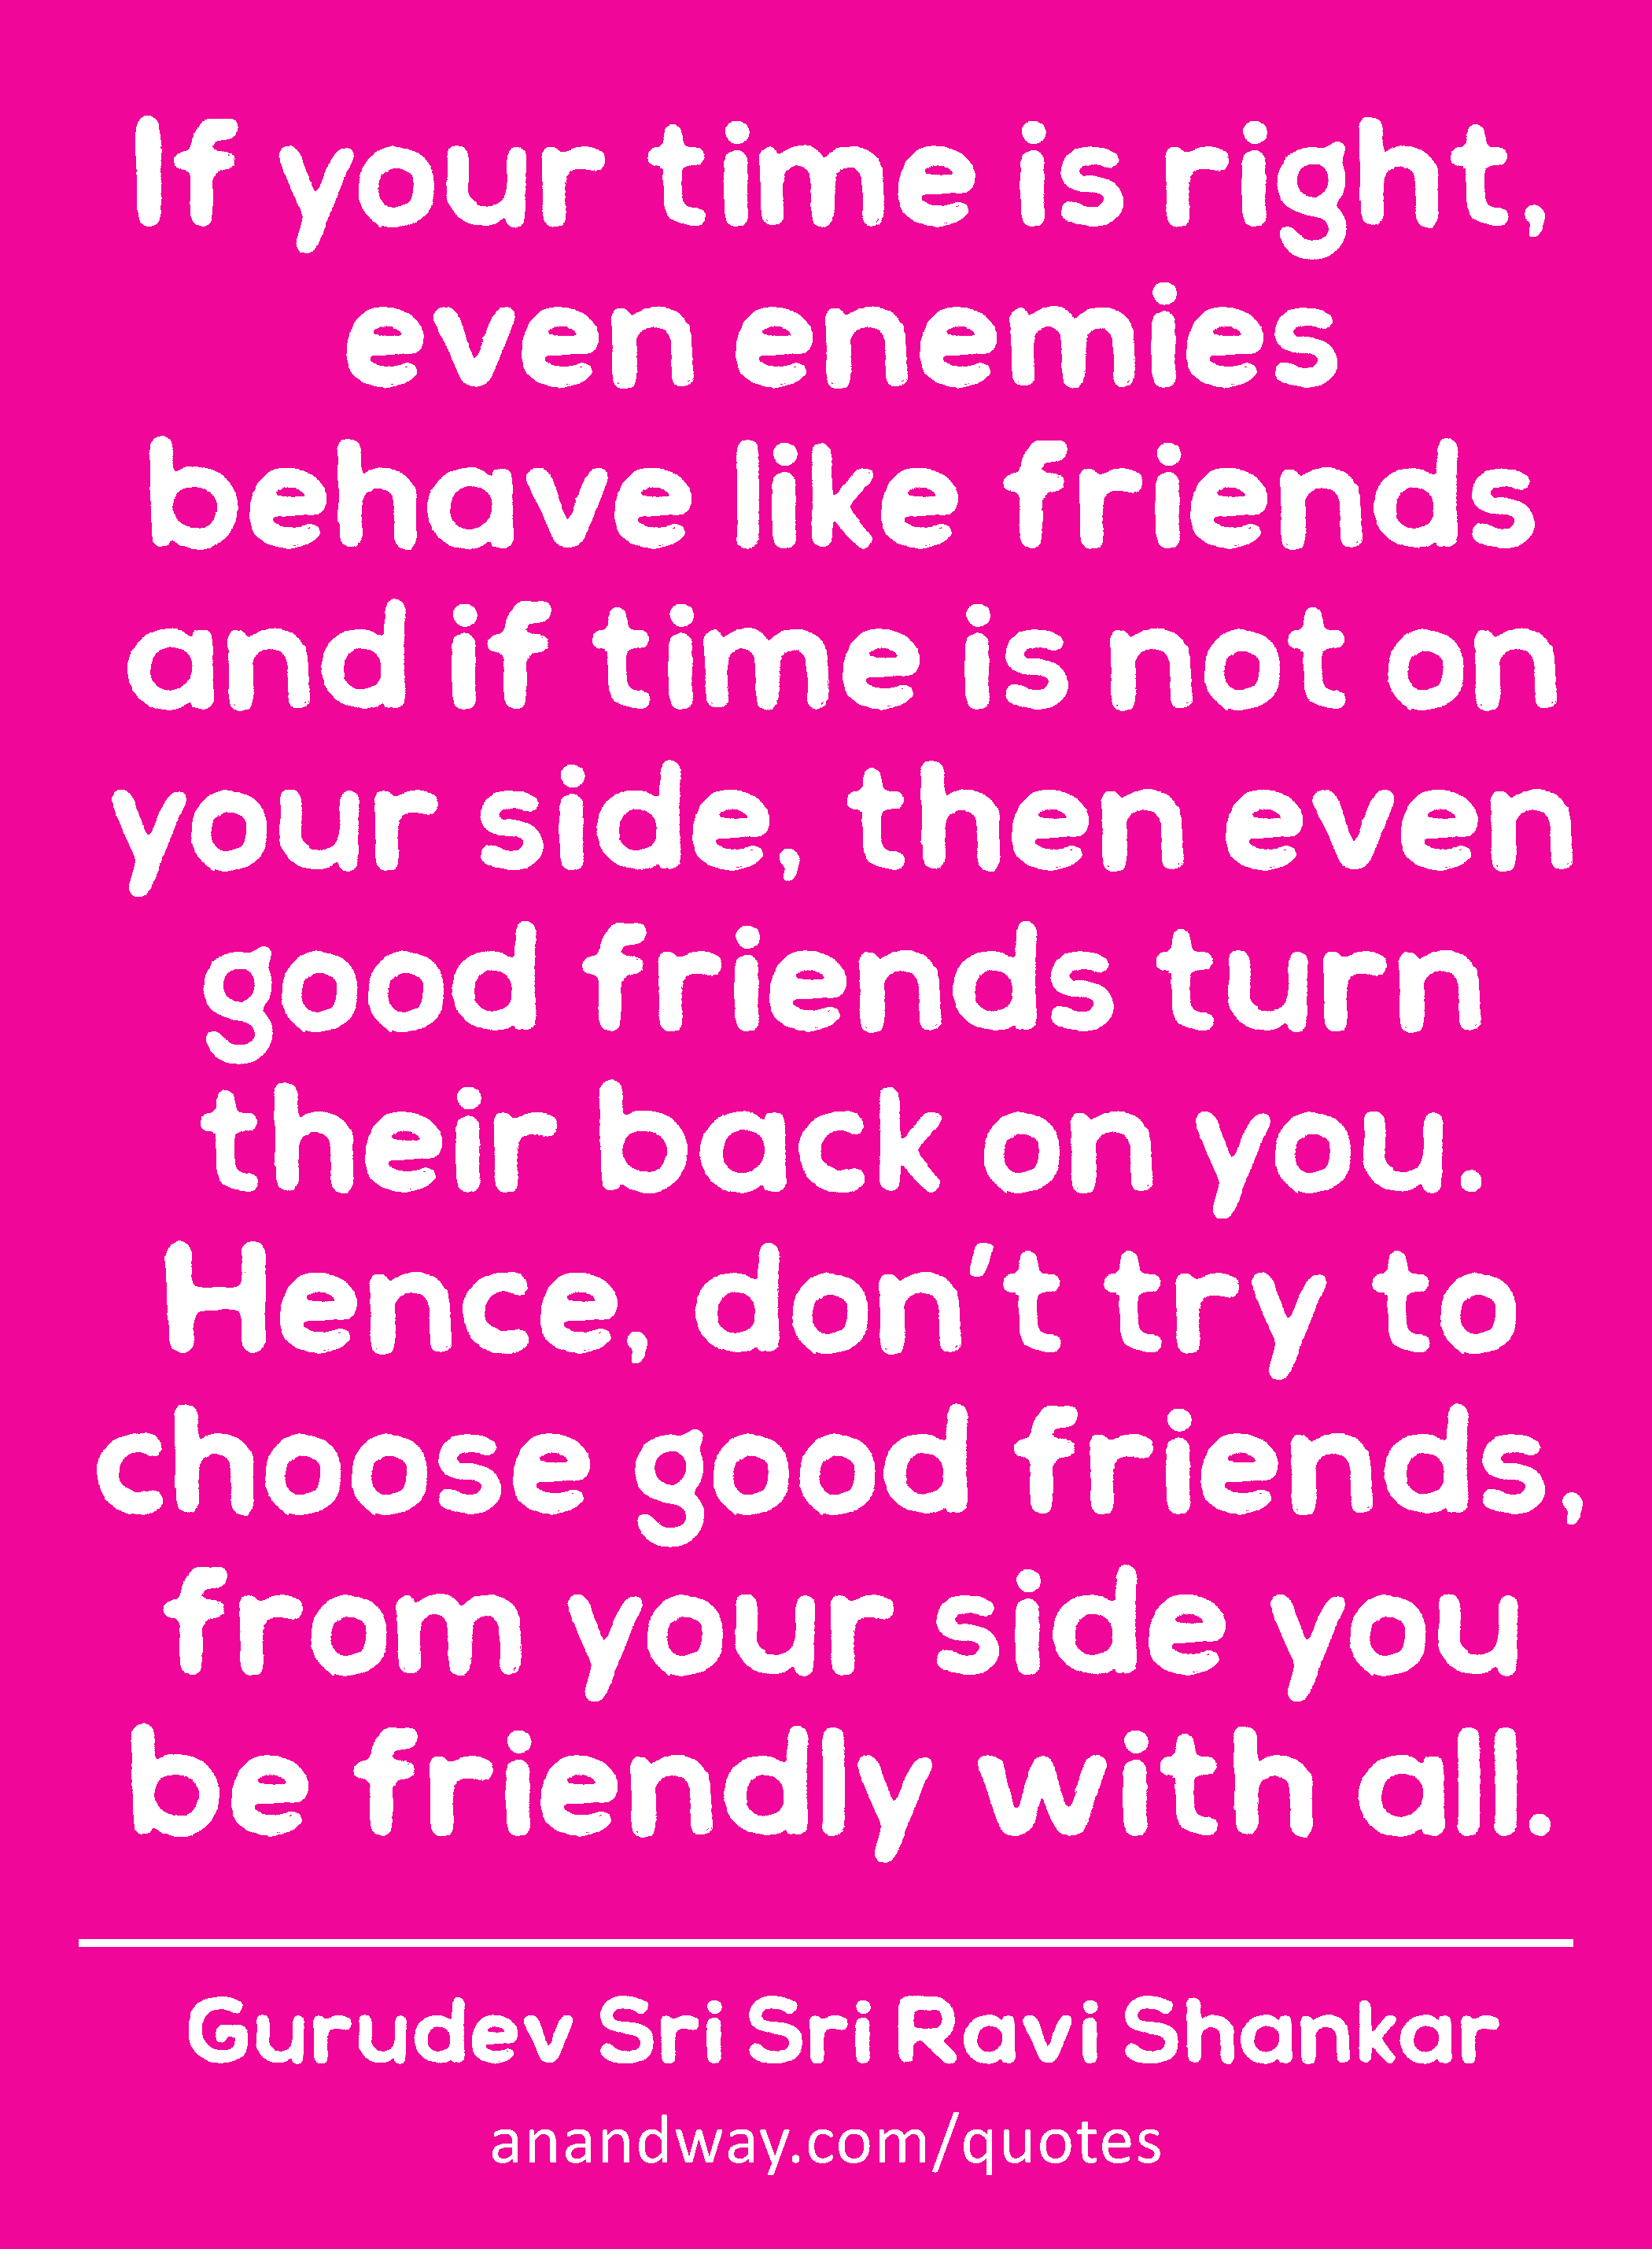 if your time is right even enemies behave like friends and by